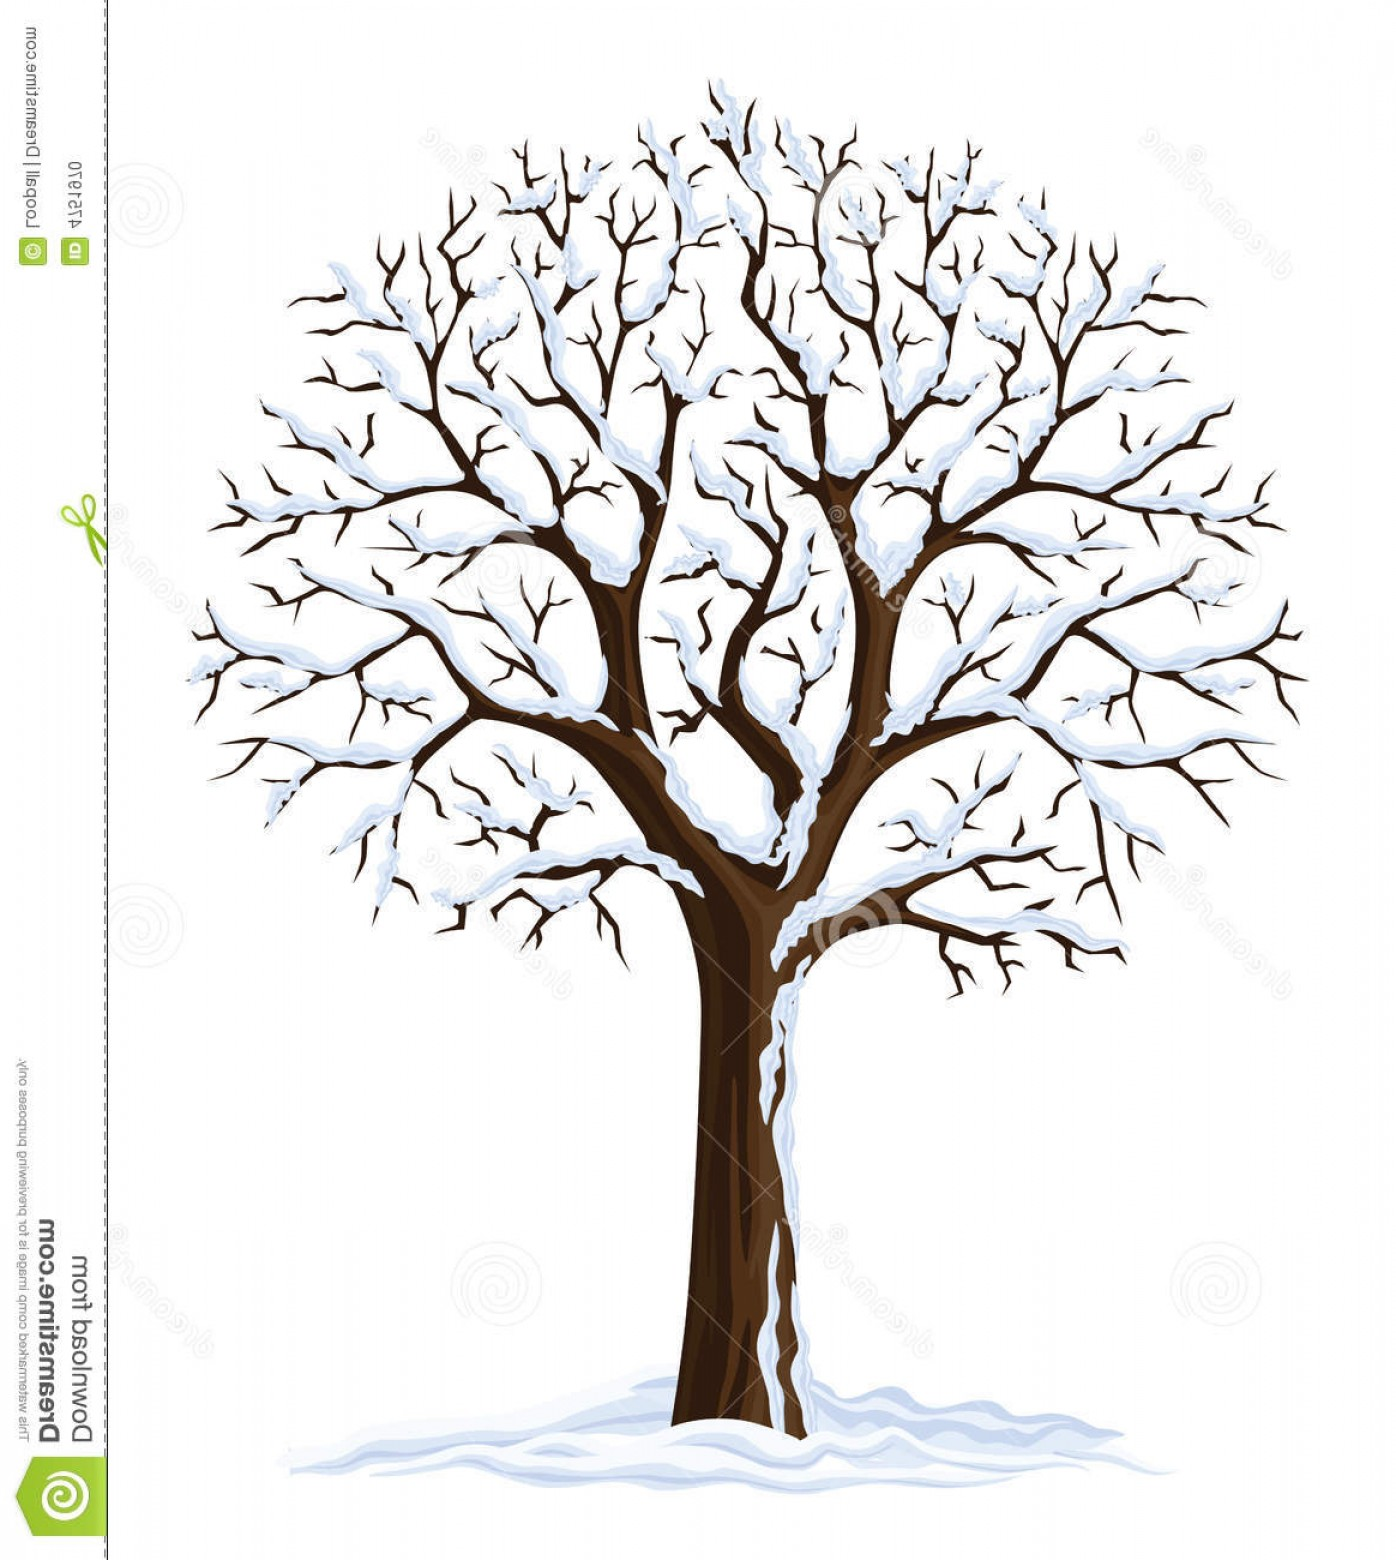 Winter Tree Silhouette Vector: Stock Photo Vector Silhouette Winter Tree Image